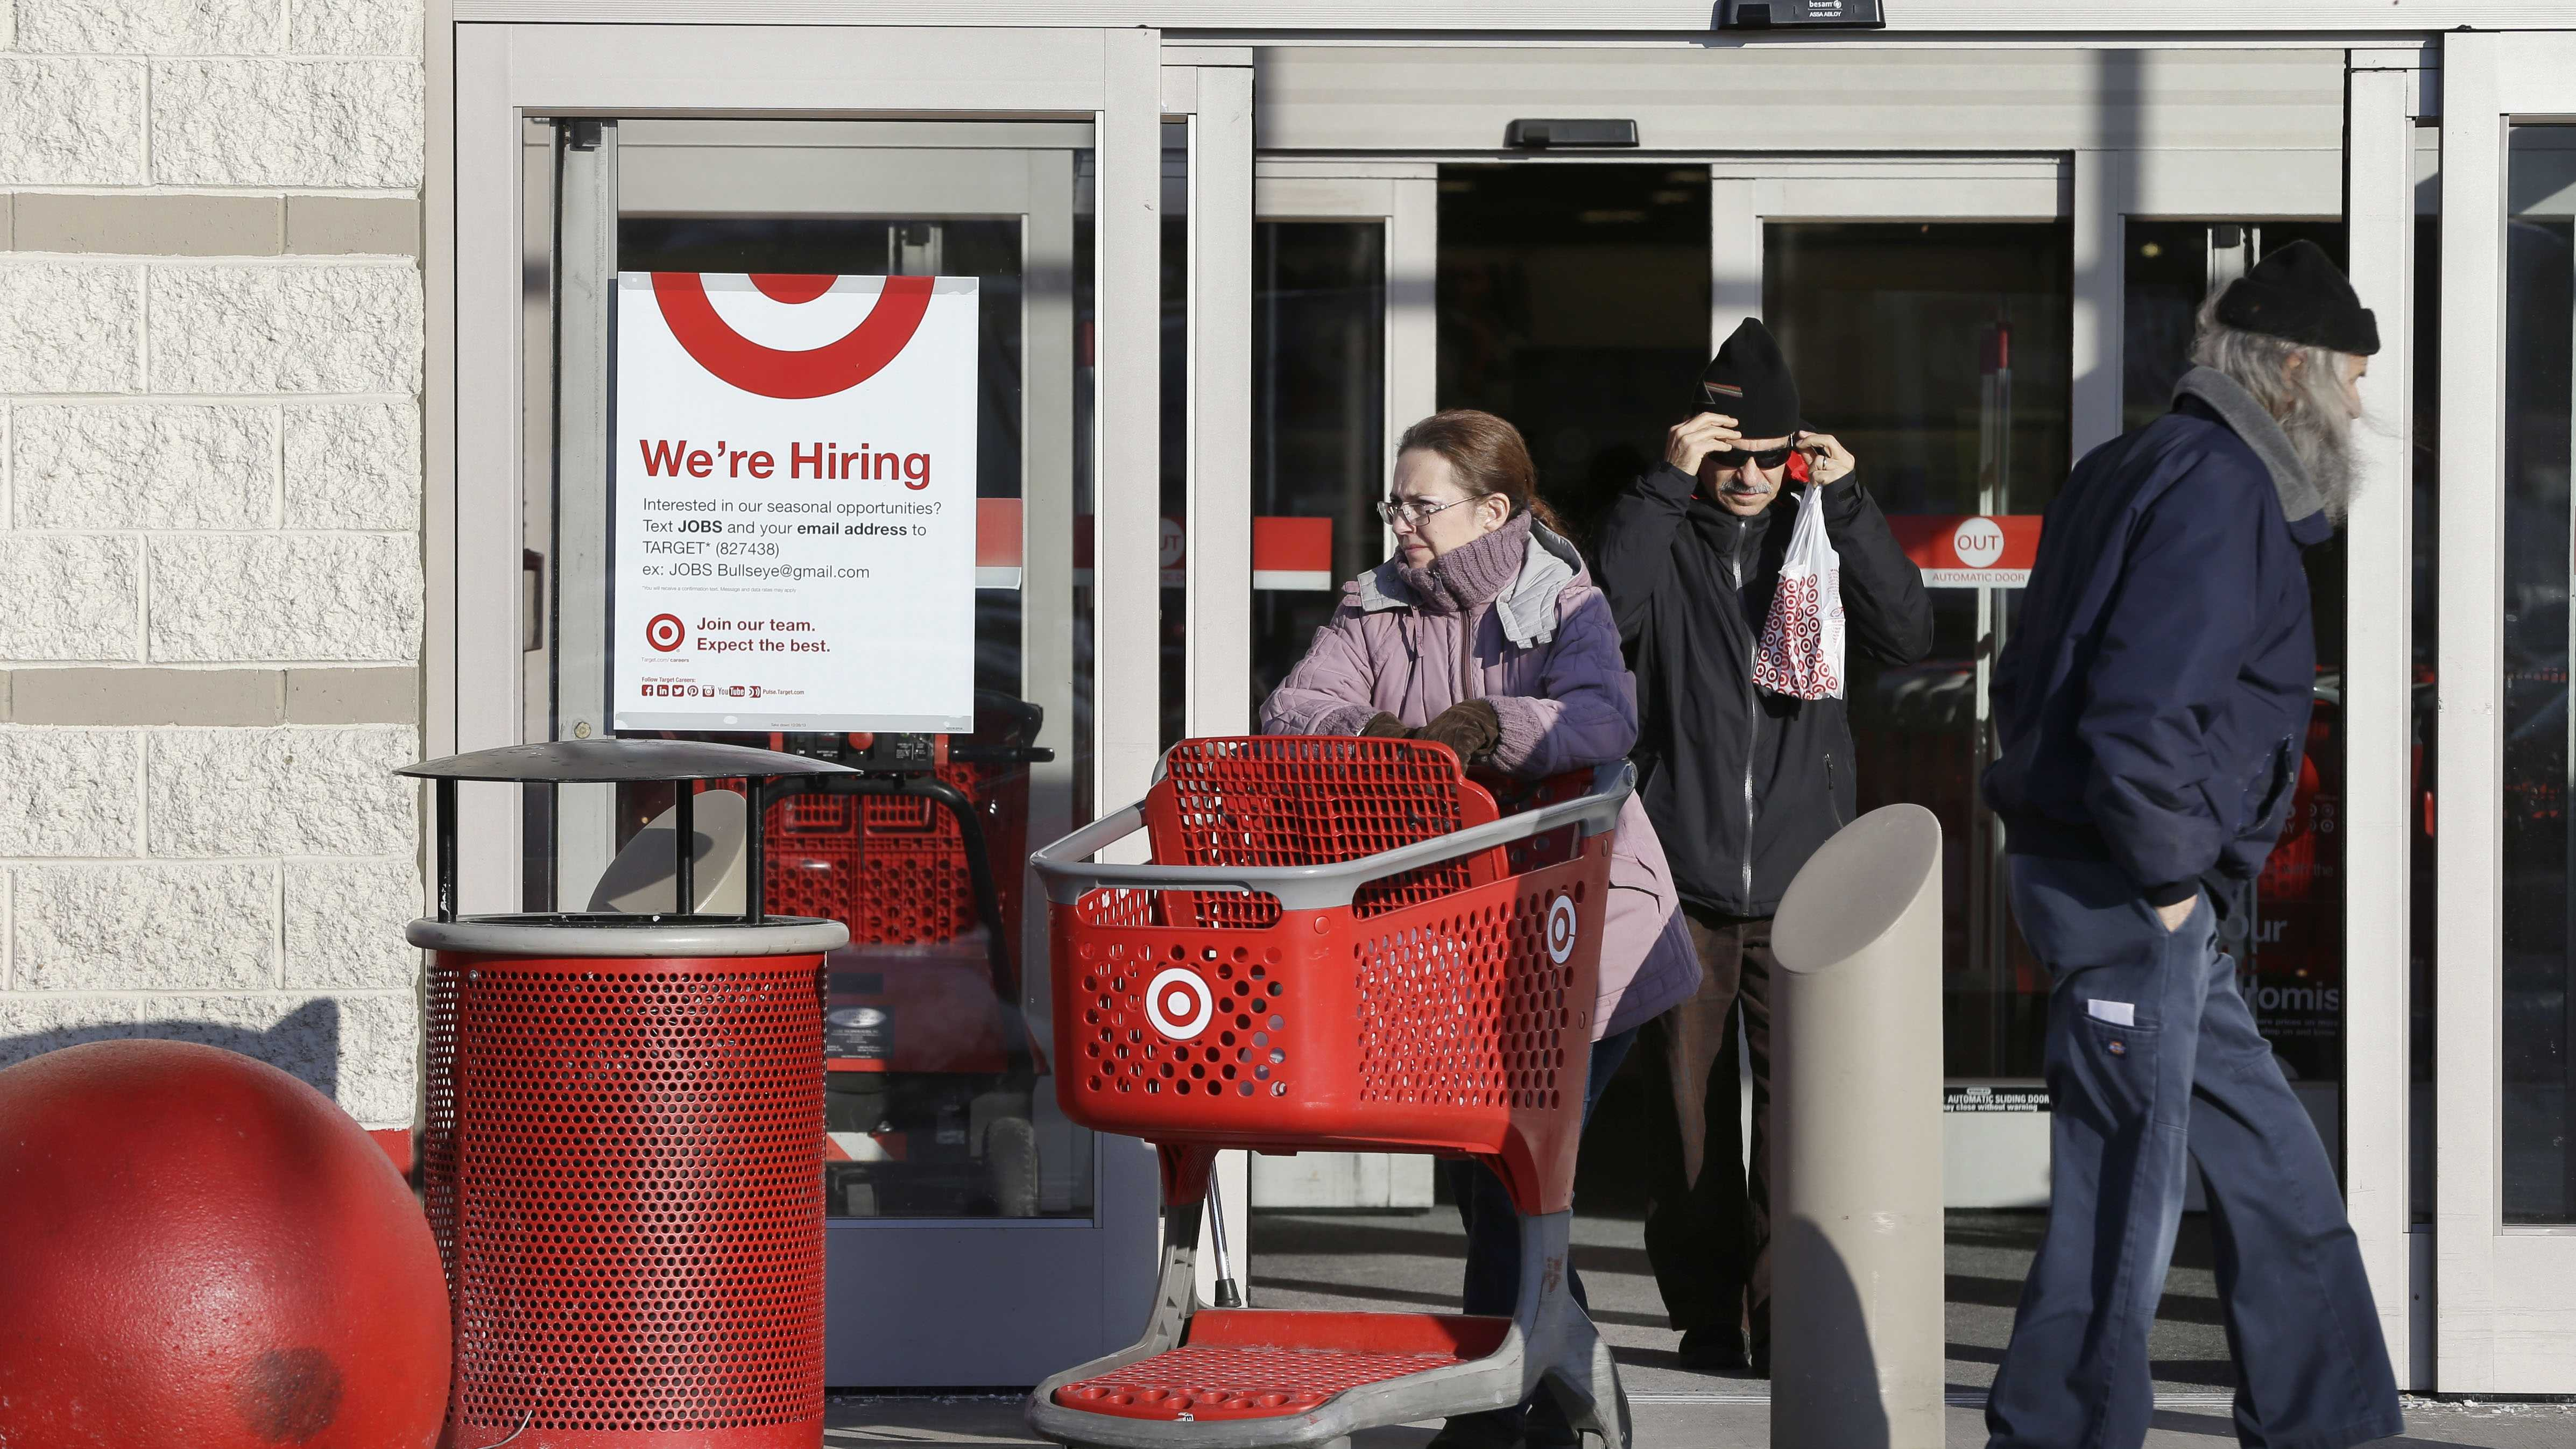 A woman pushes a shopping cart, center left, while departing a Target retail store Thursday, Dec. 19, 2013 in Watertown, Mass. Target says that about 40 million credit and debit card accounts may have been affected by a data breach that occurred just as the holiday shopping season shifted into high gear.